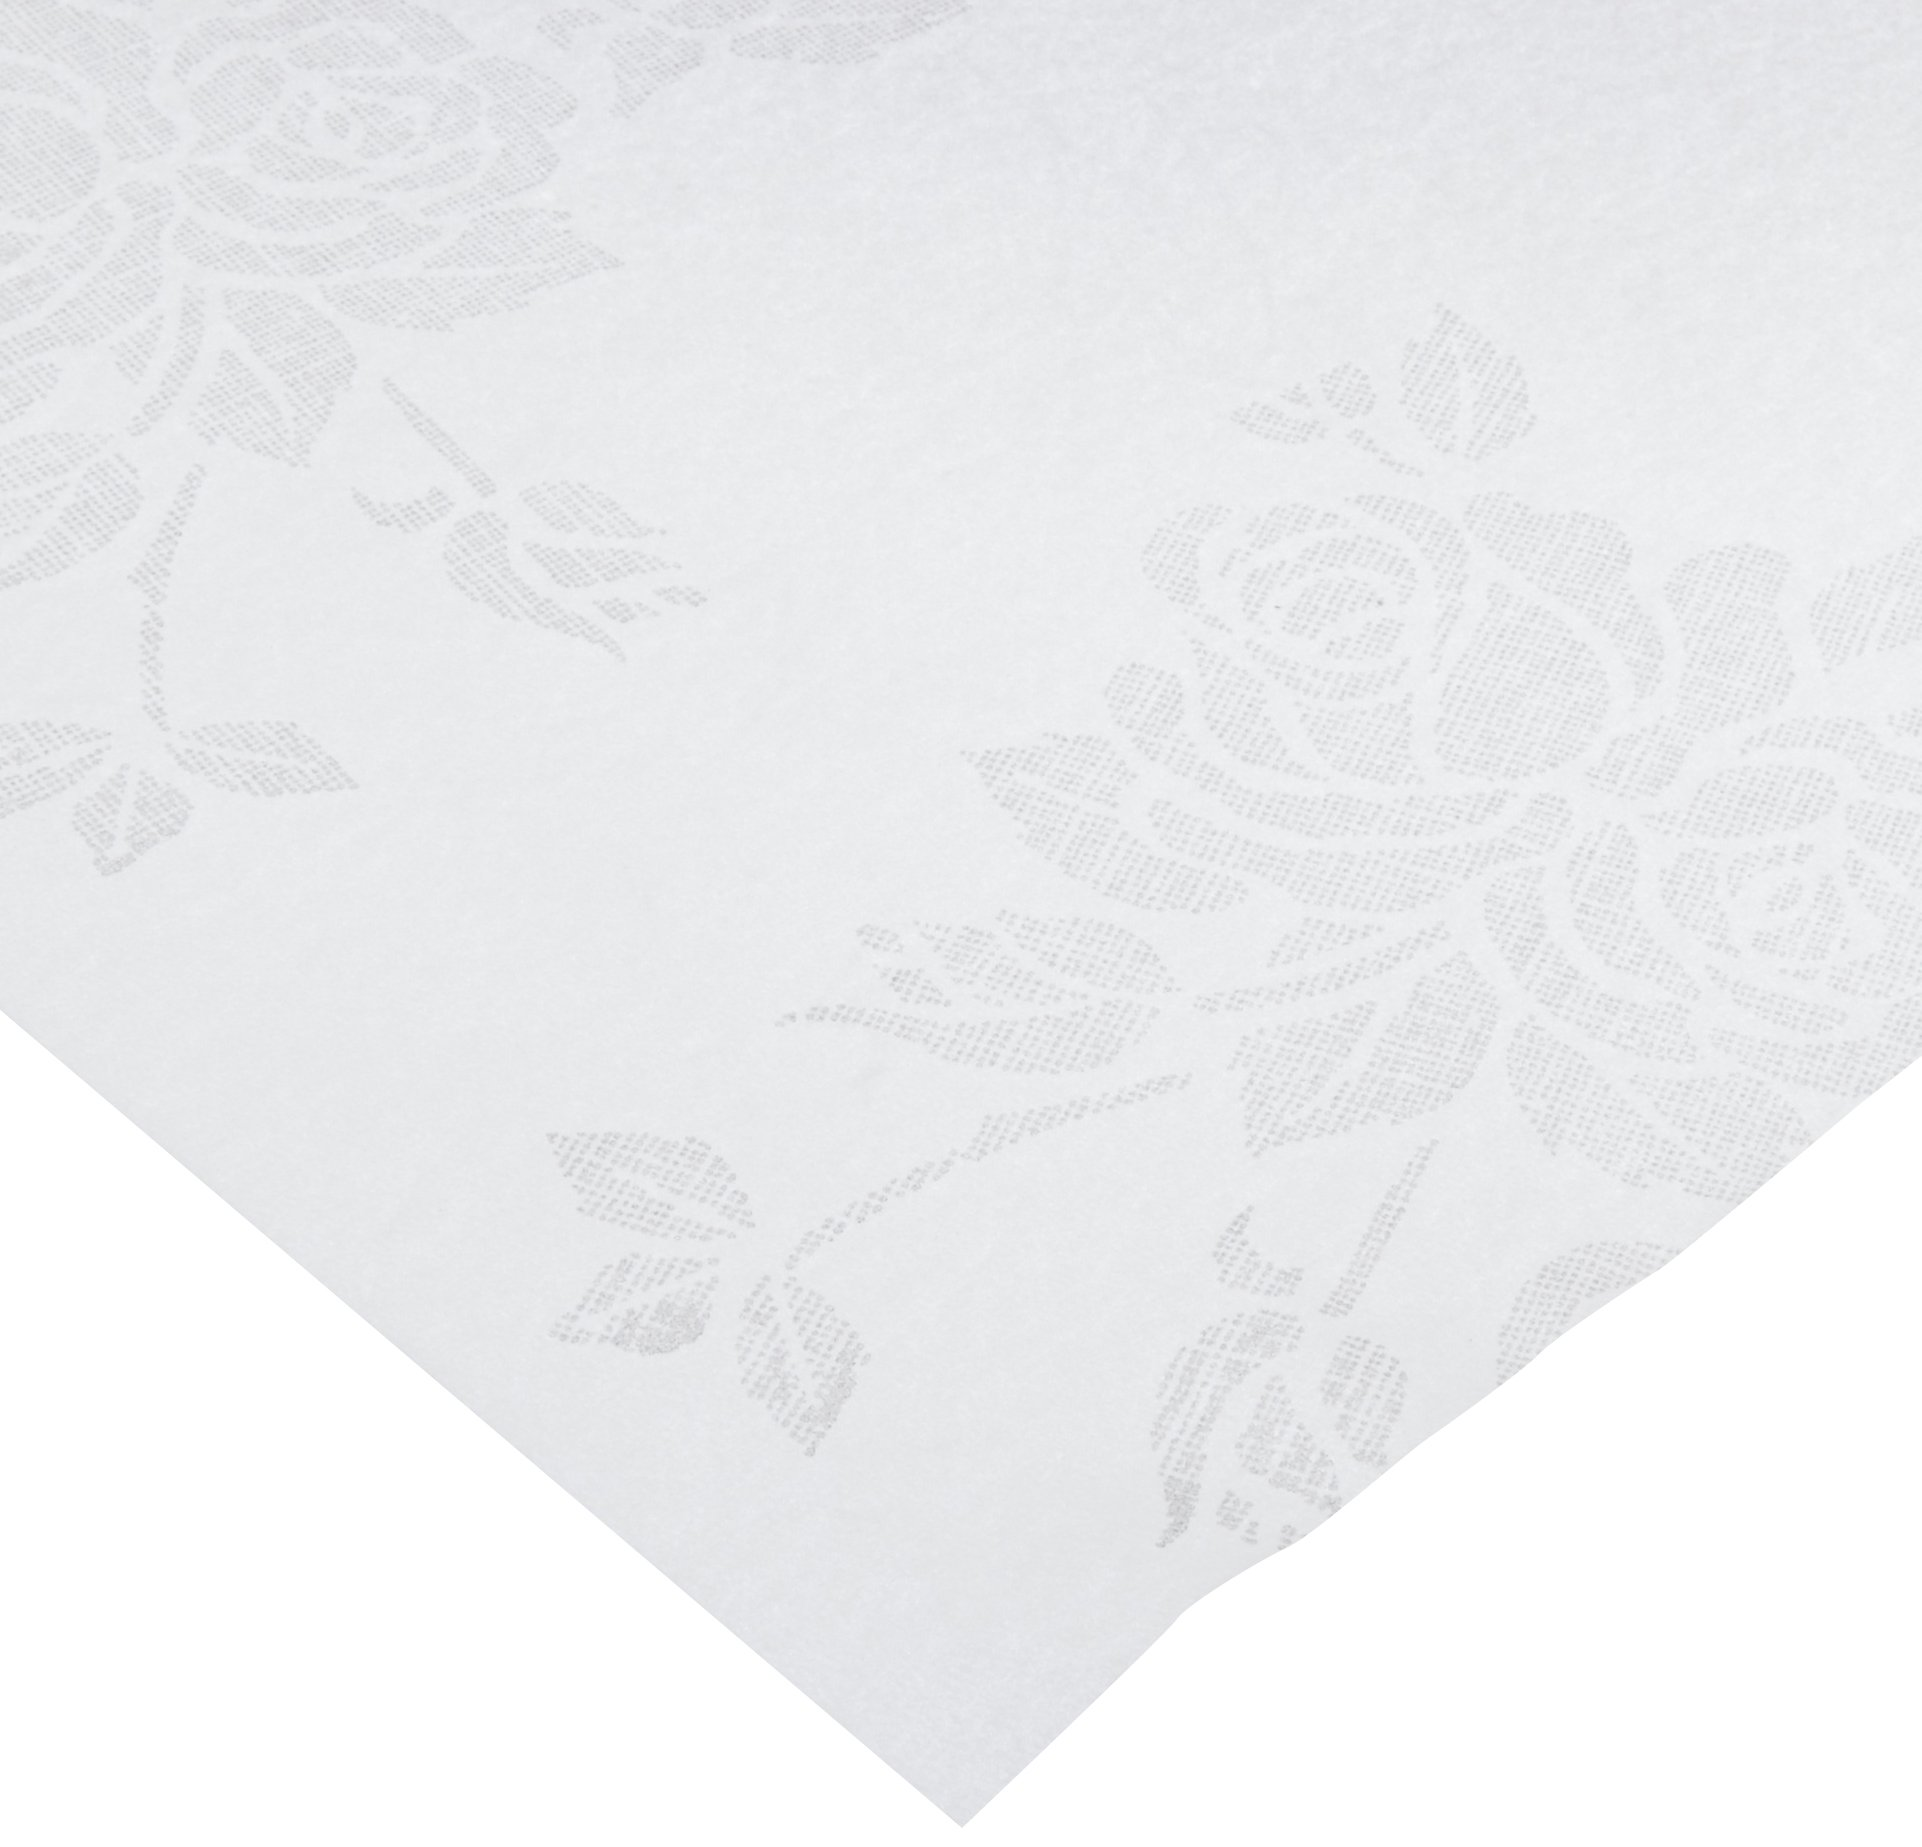 Hoffmaster 236420 Linen-Like Color In Depth Tablecover, 82'' Length x 82'' Width, Silver Prestige (Case of 24) by Hoffmaster (Image #2)